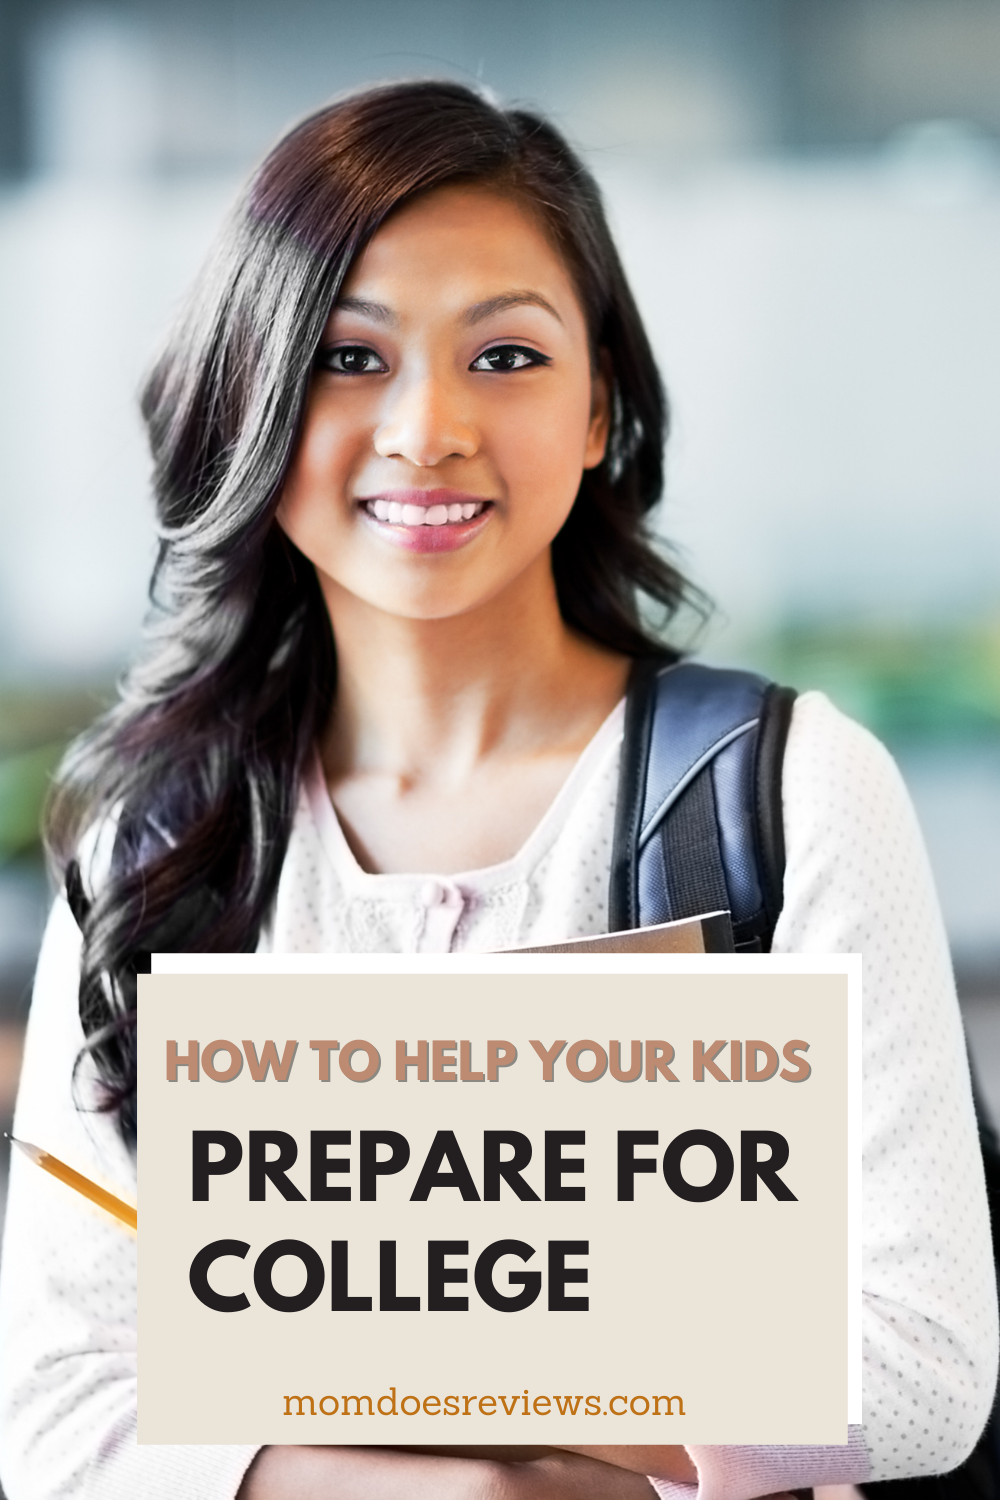 How To Support Your Kids When They're Preparing For College